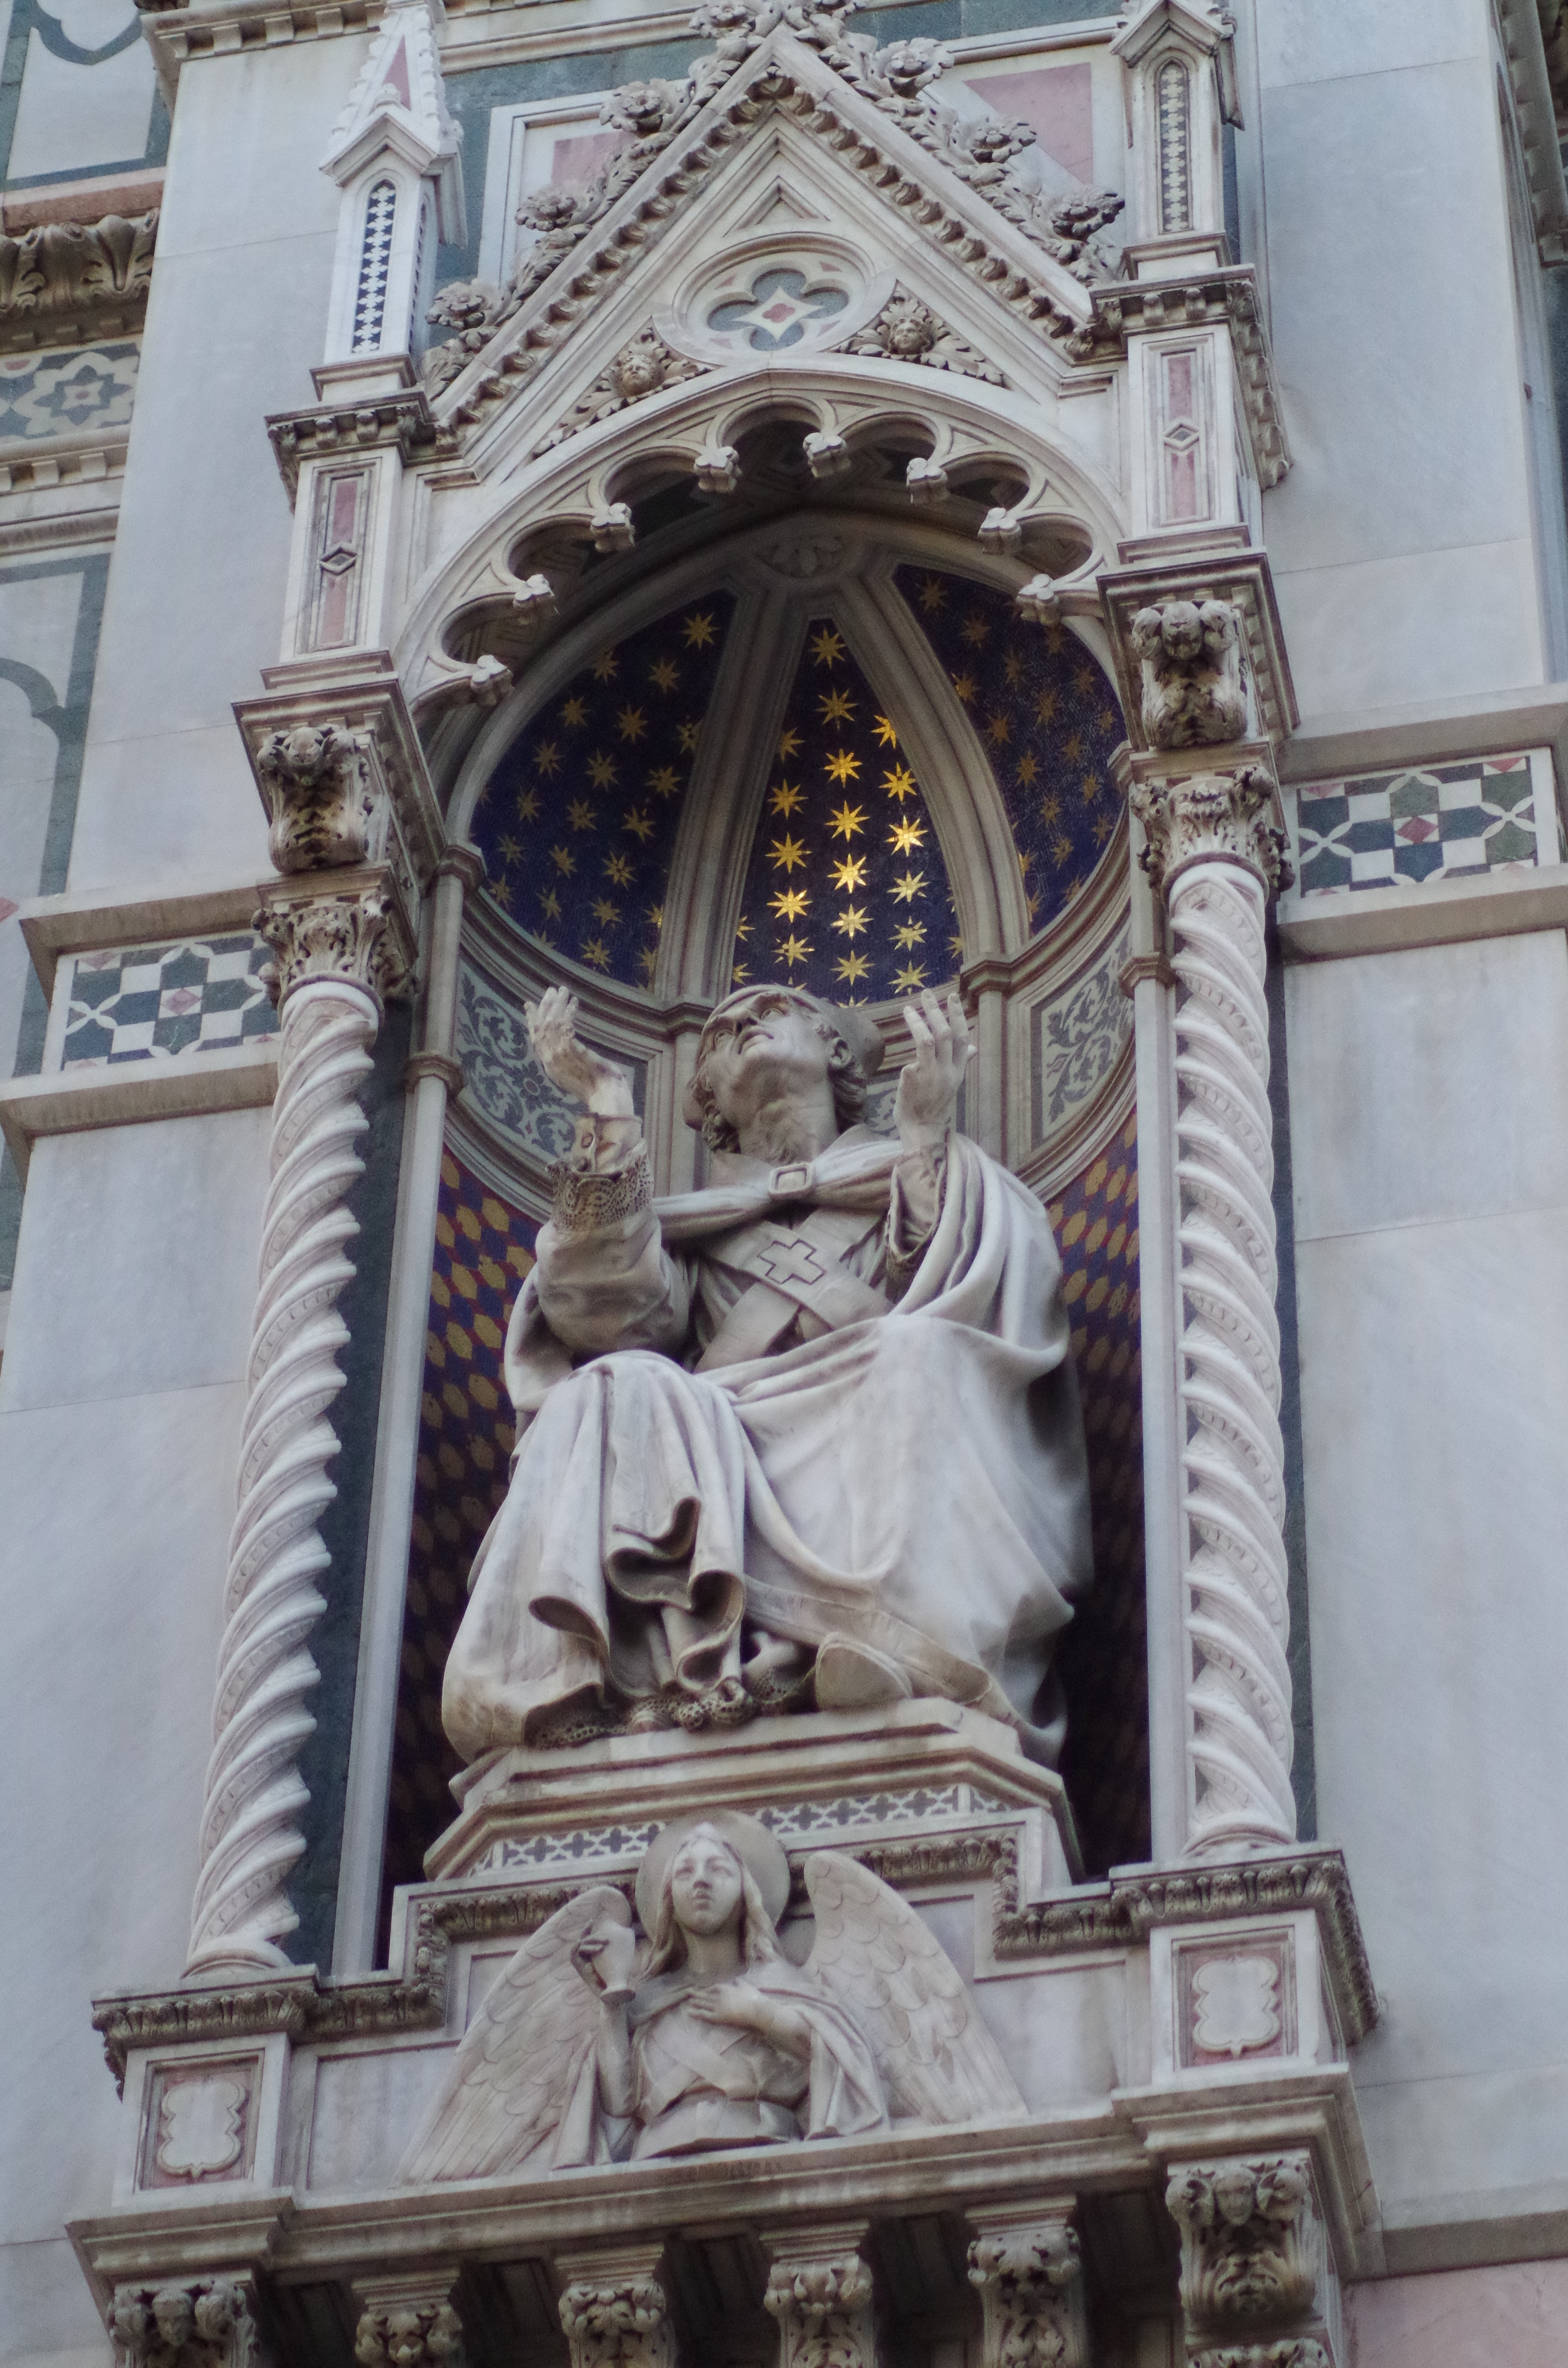 Ornate statue of person in robes photo